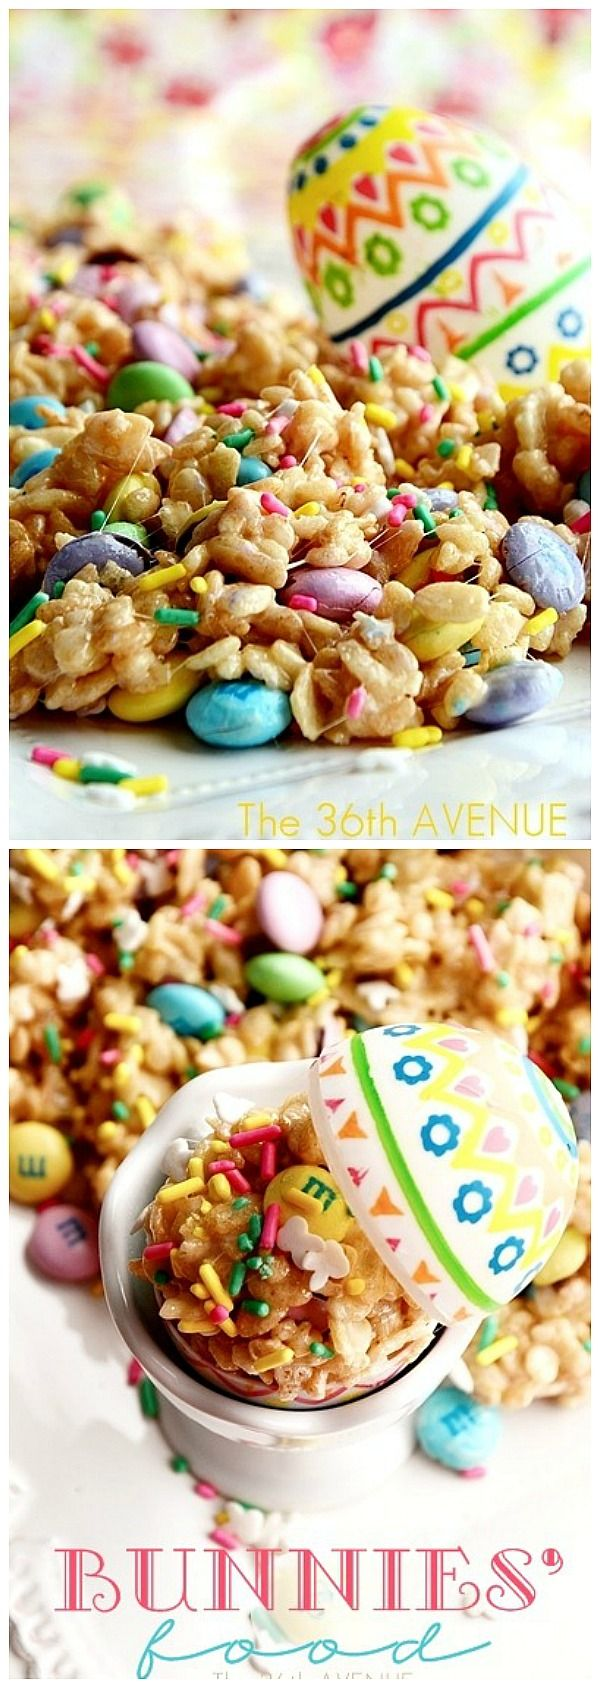 Festive Rice Krispy Treats. This recipe is easy, fun and yummy... Kids love this stuff! #recipes #easter